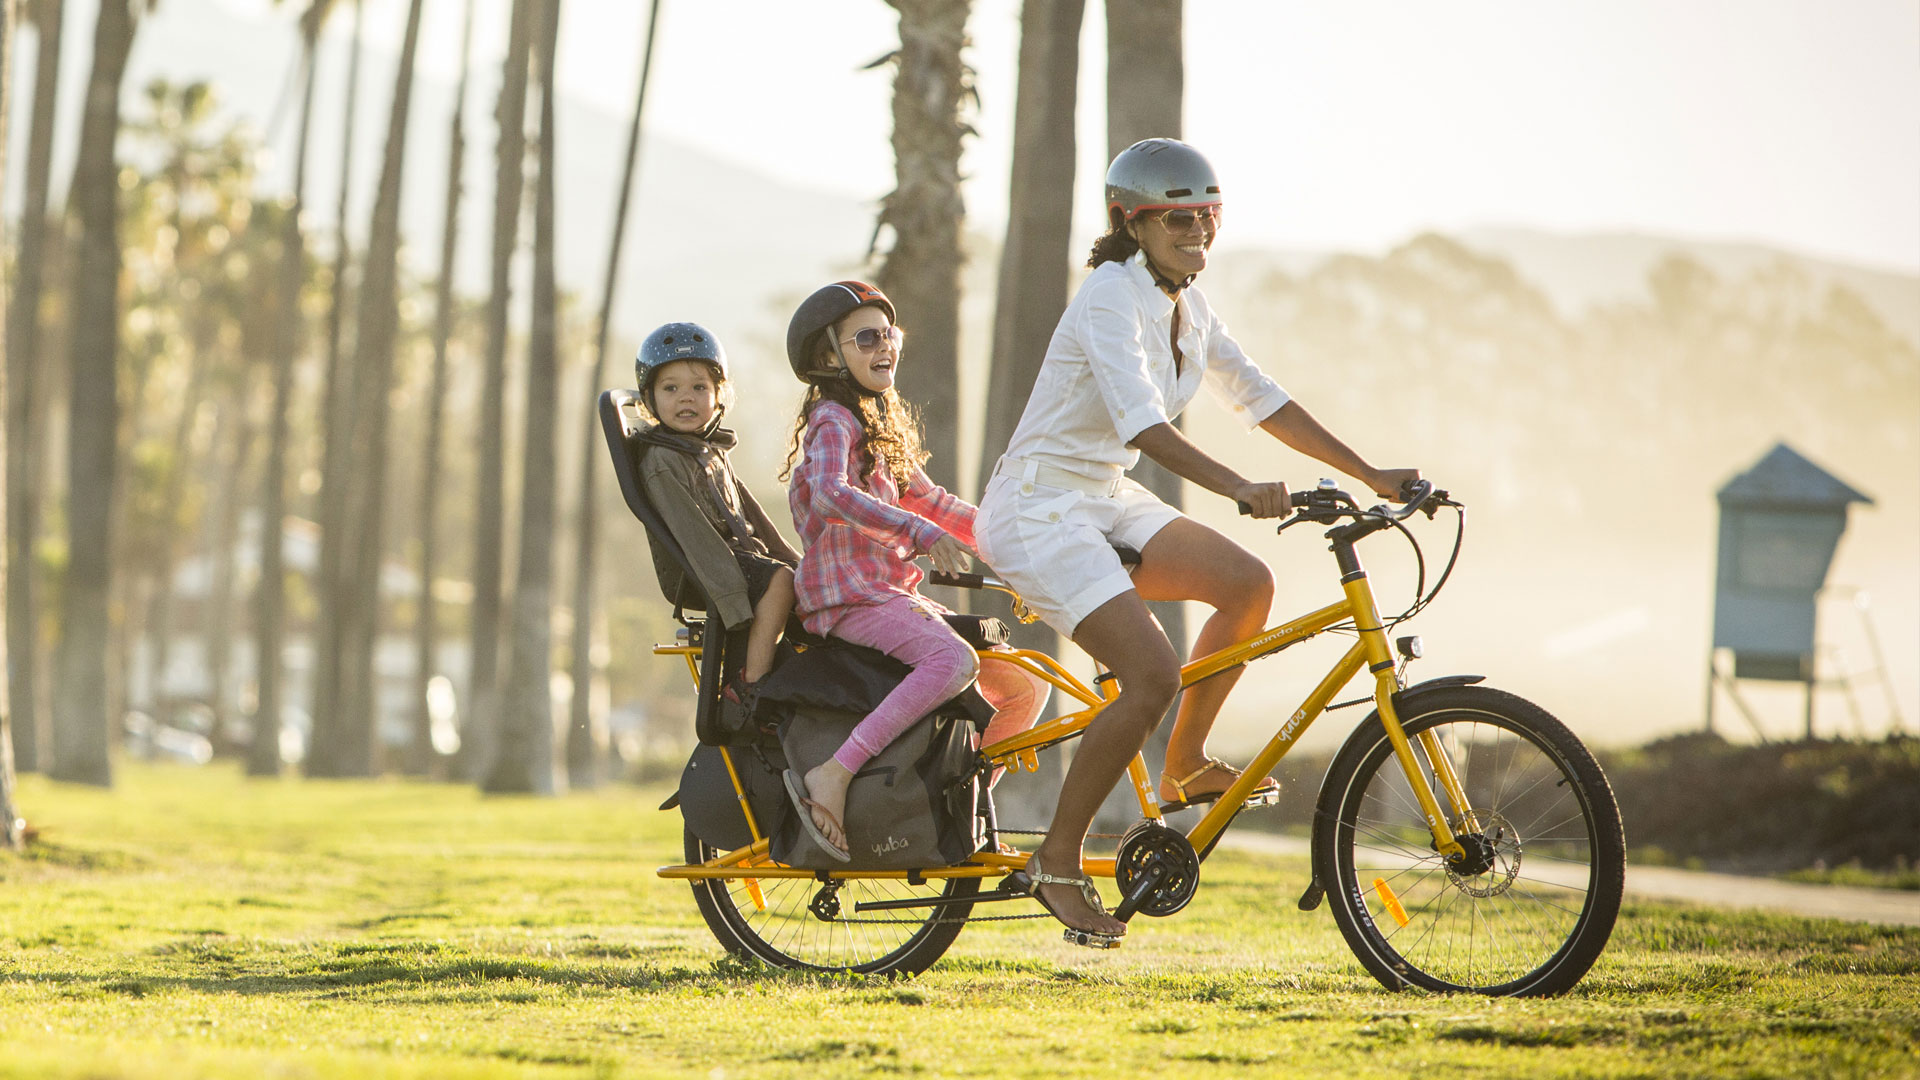 Yuba cargo bike mundo lux carrying kids by the beach